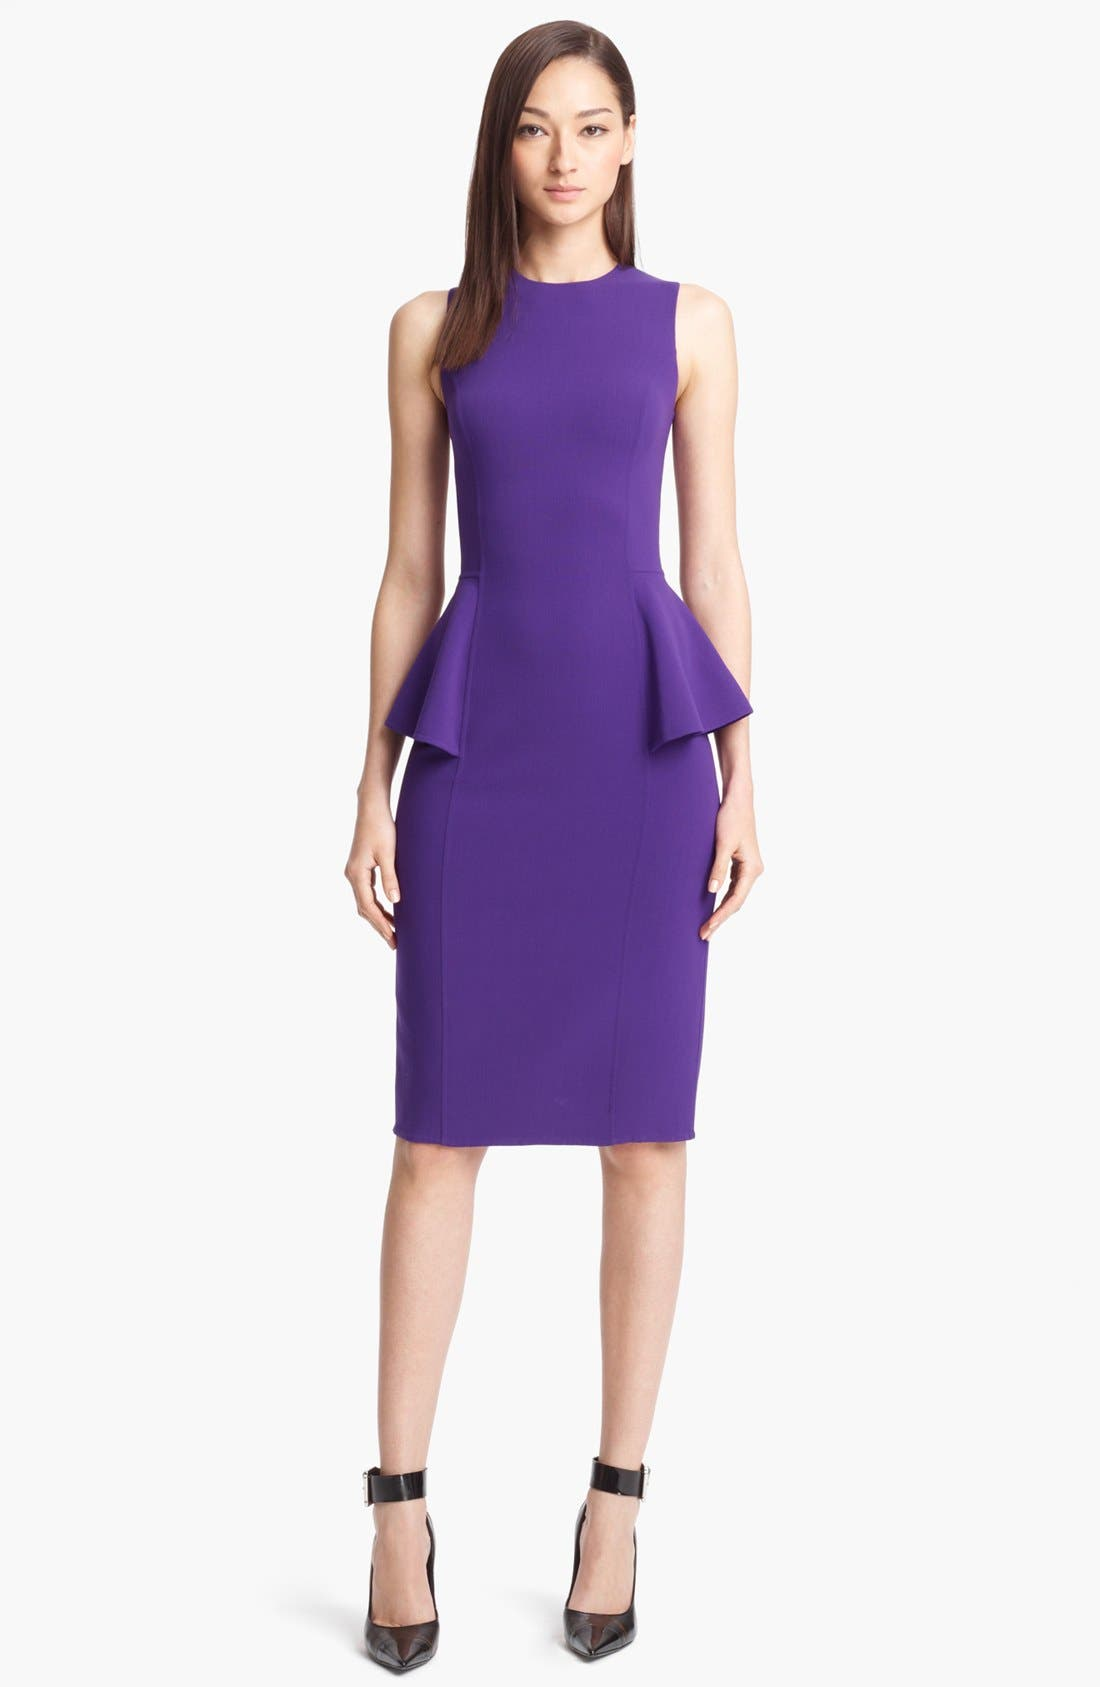 Alternate Image 1 Selected - Michael Kors Peplum Wool Crepe Sheath Dress